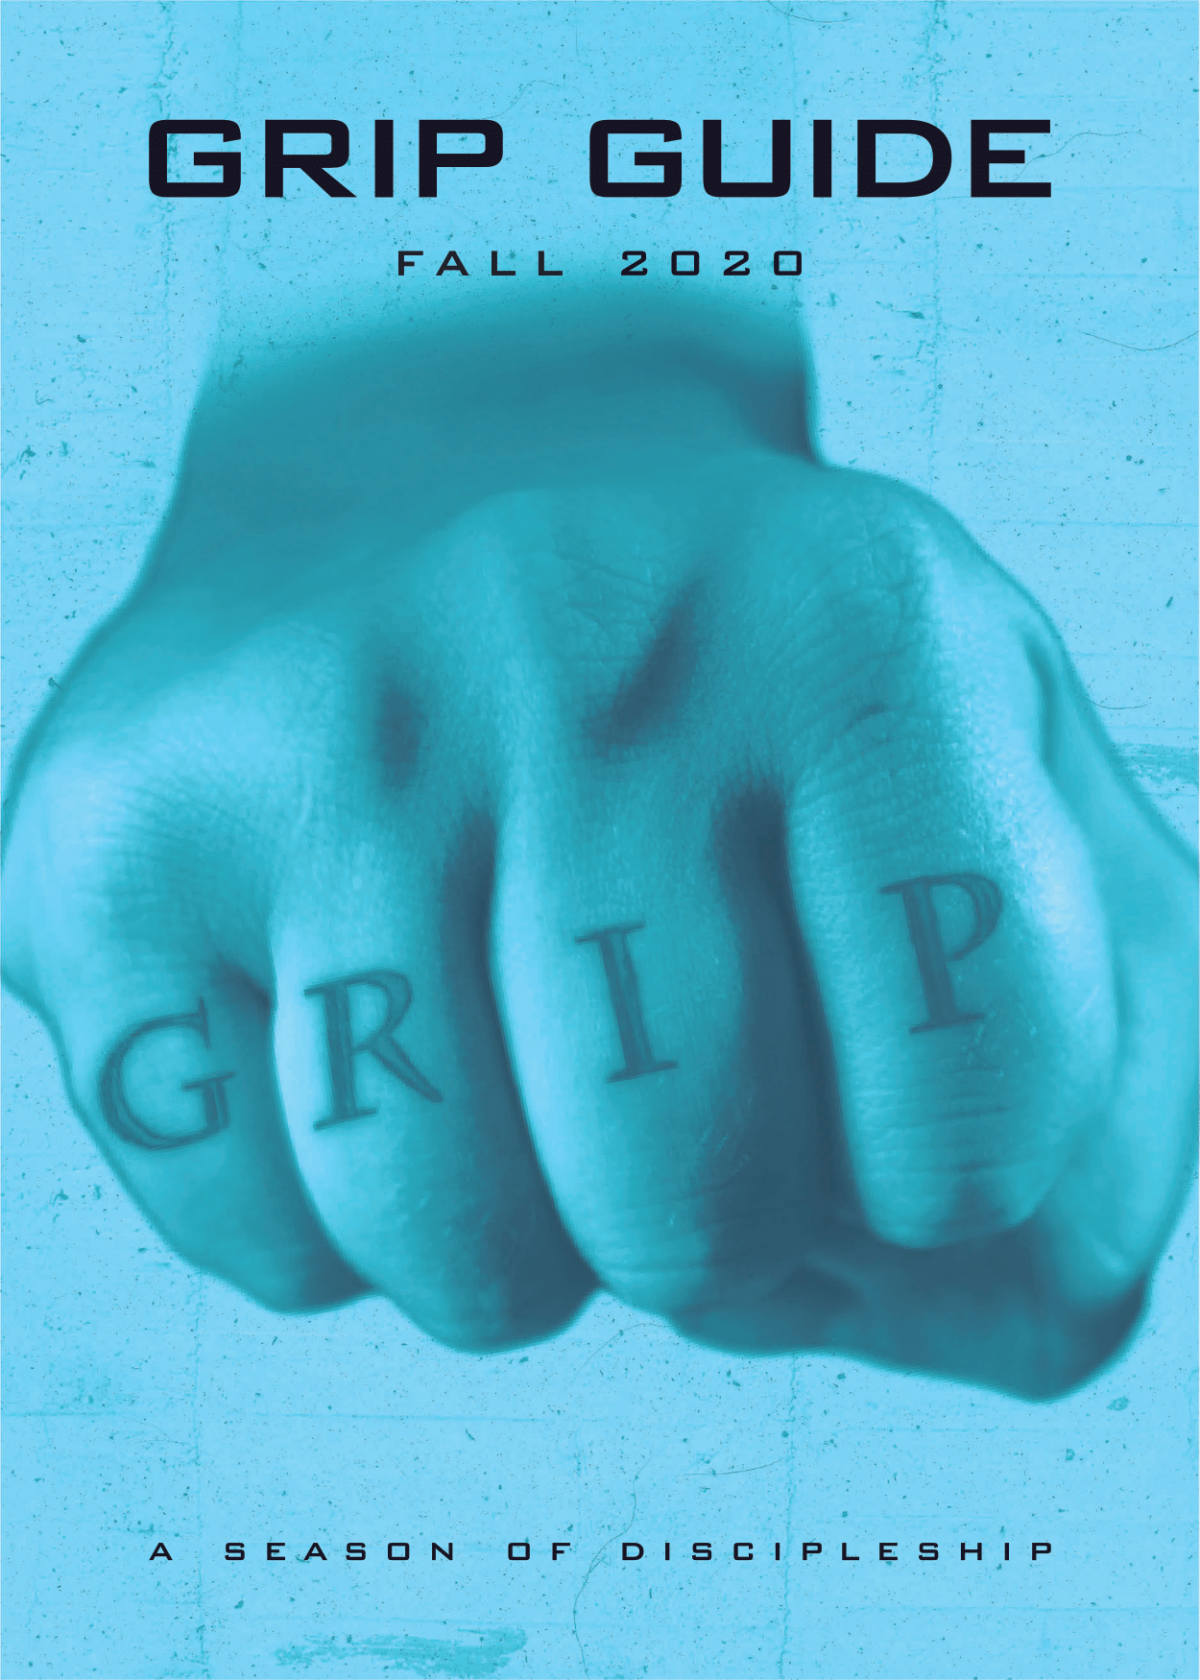 GRIP Guide Fall 2020 - Download